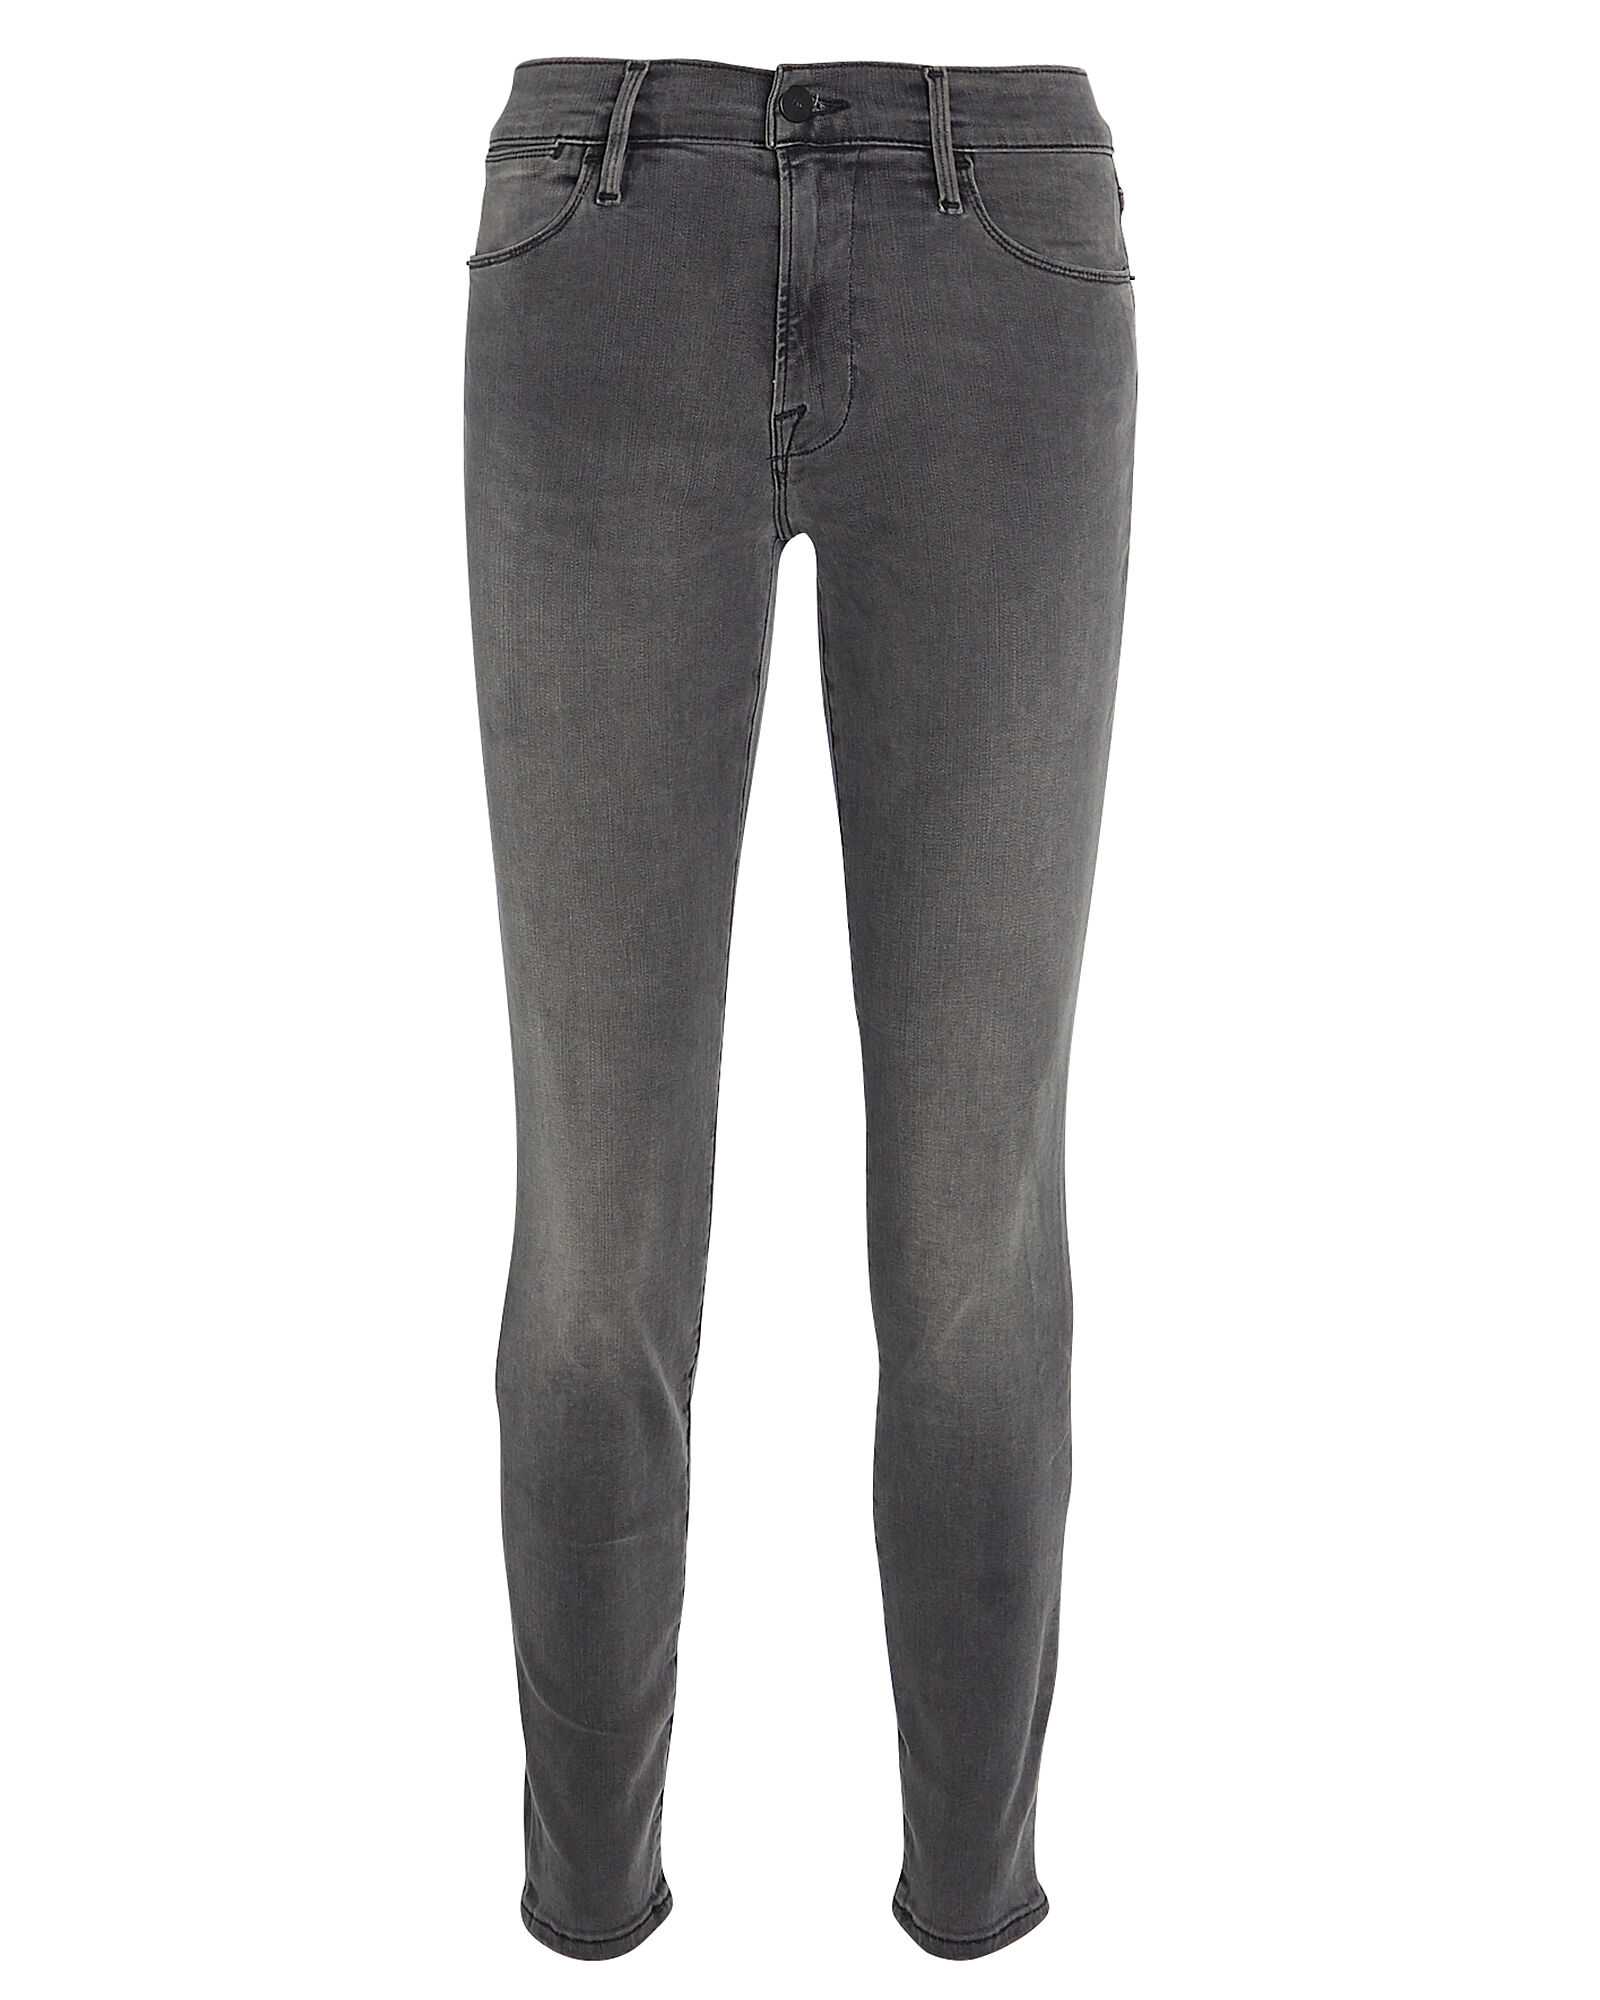 Le High Skinny Jeans, FADED BLACK DENIM, hi-res